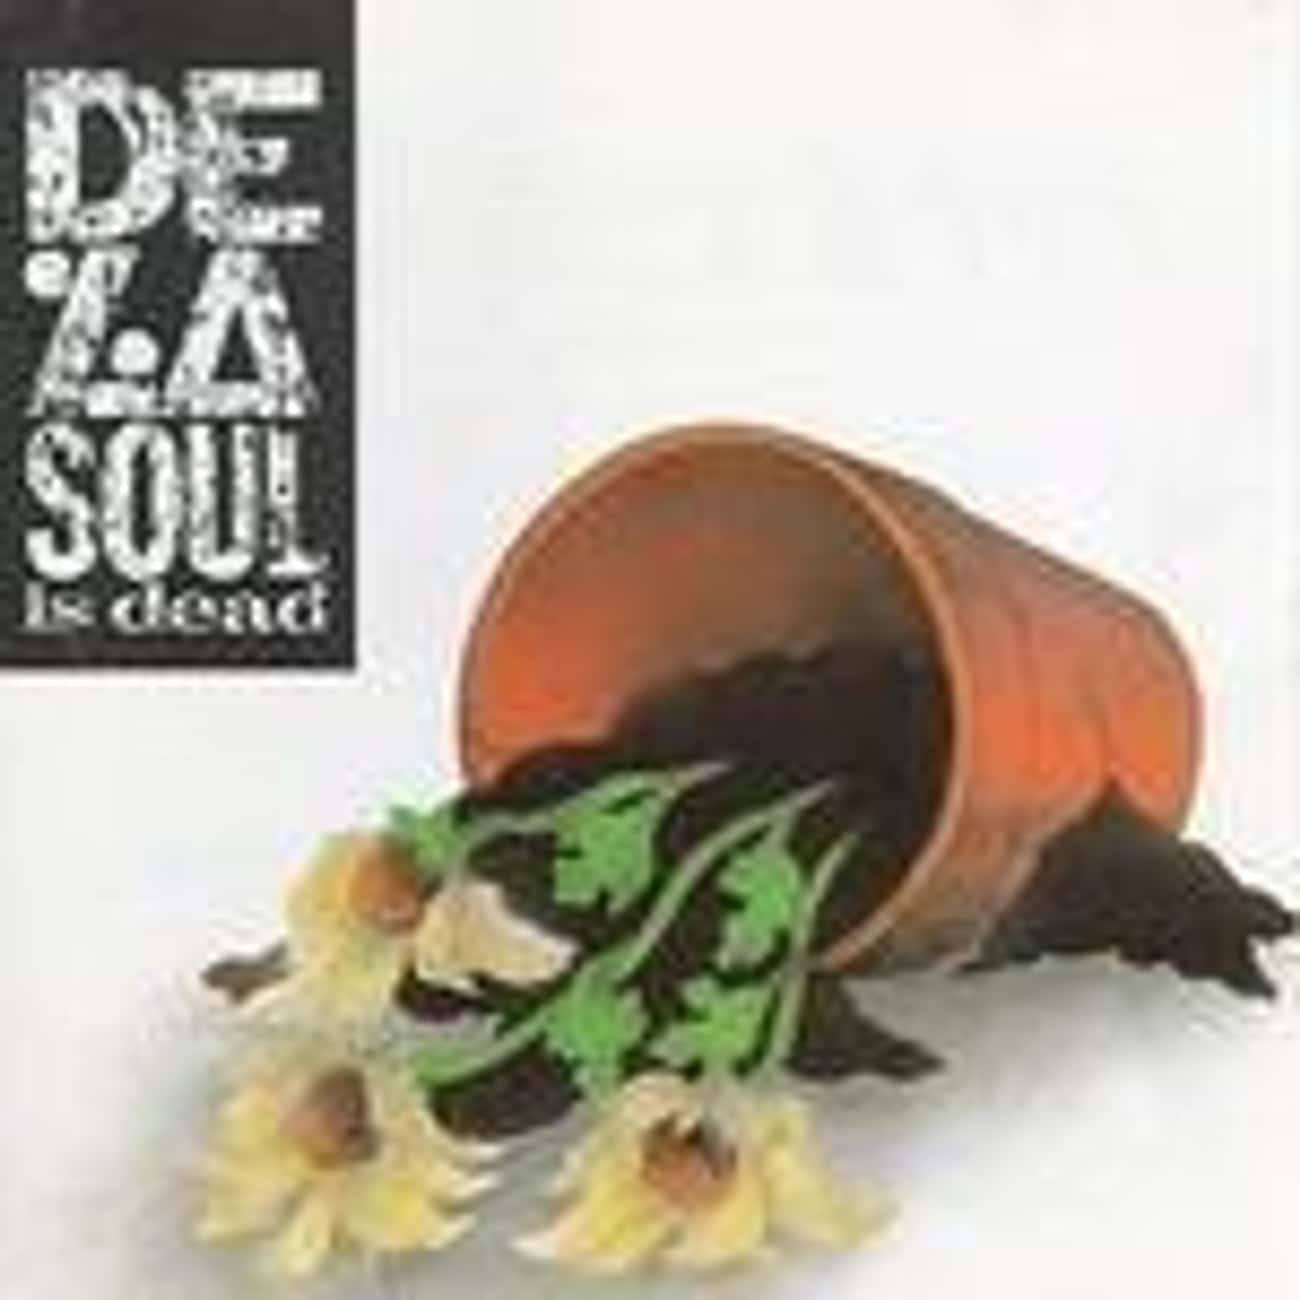 De La Soul Is Dead is listed (or ranked) 2 on the list The Best De La Soul Albums of All Time